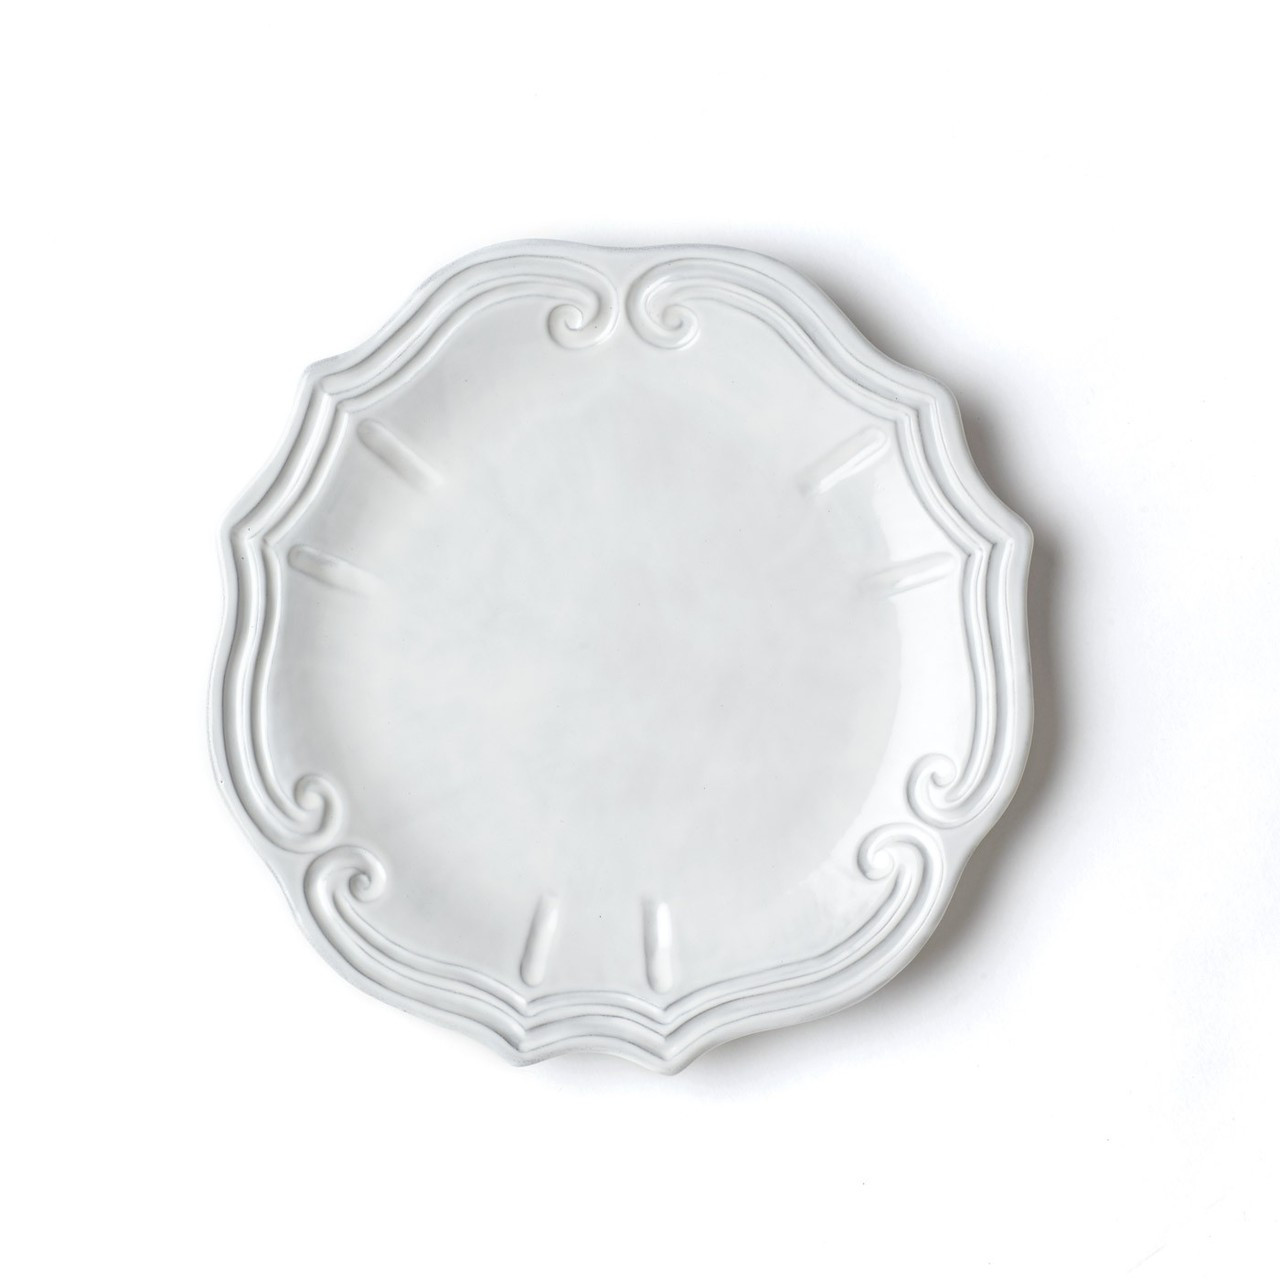 Inspired by the architectural curves of 17th century Europe the Incanto Baroque European Dinner Plate  sc 1 st  Plum Pudding & Vietri Incanto Baroque European Dinner Plate